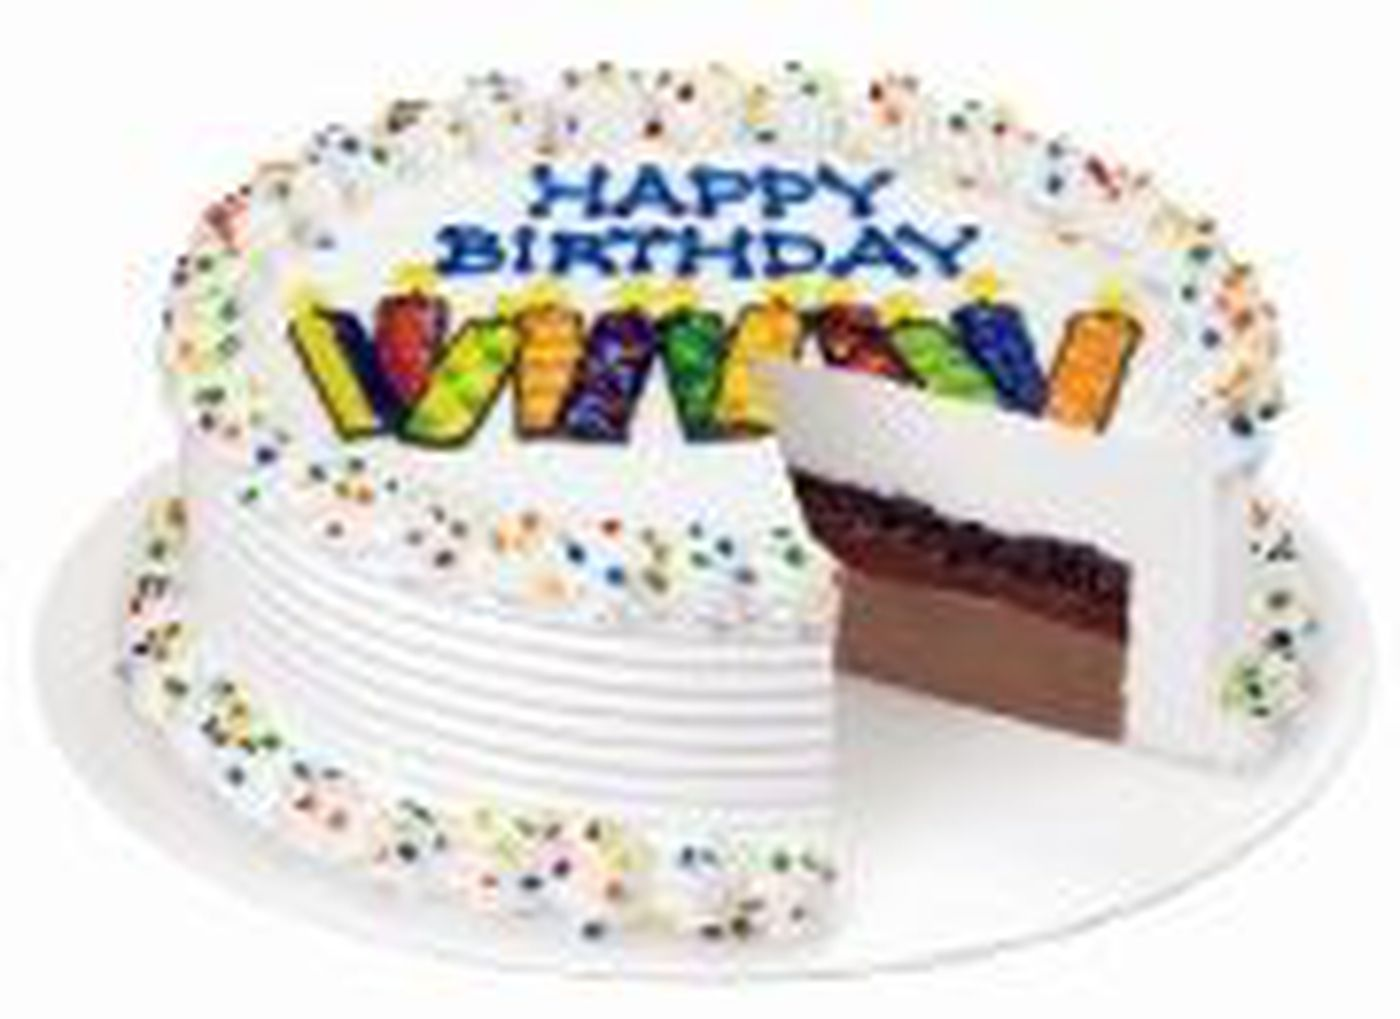 Tremendous Win A Dairy Queen Cake And Eat It Too Funny Birthday Cards Online Alyptdamsfinfo